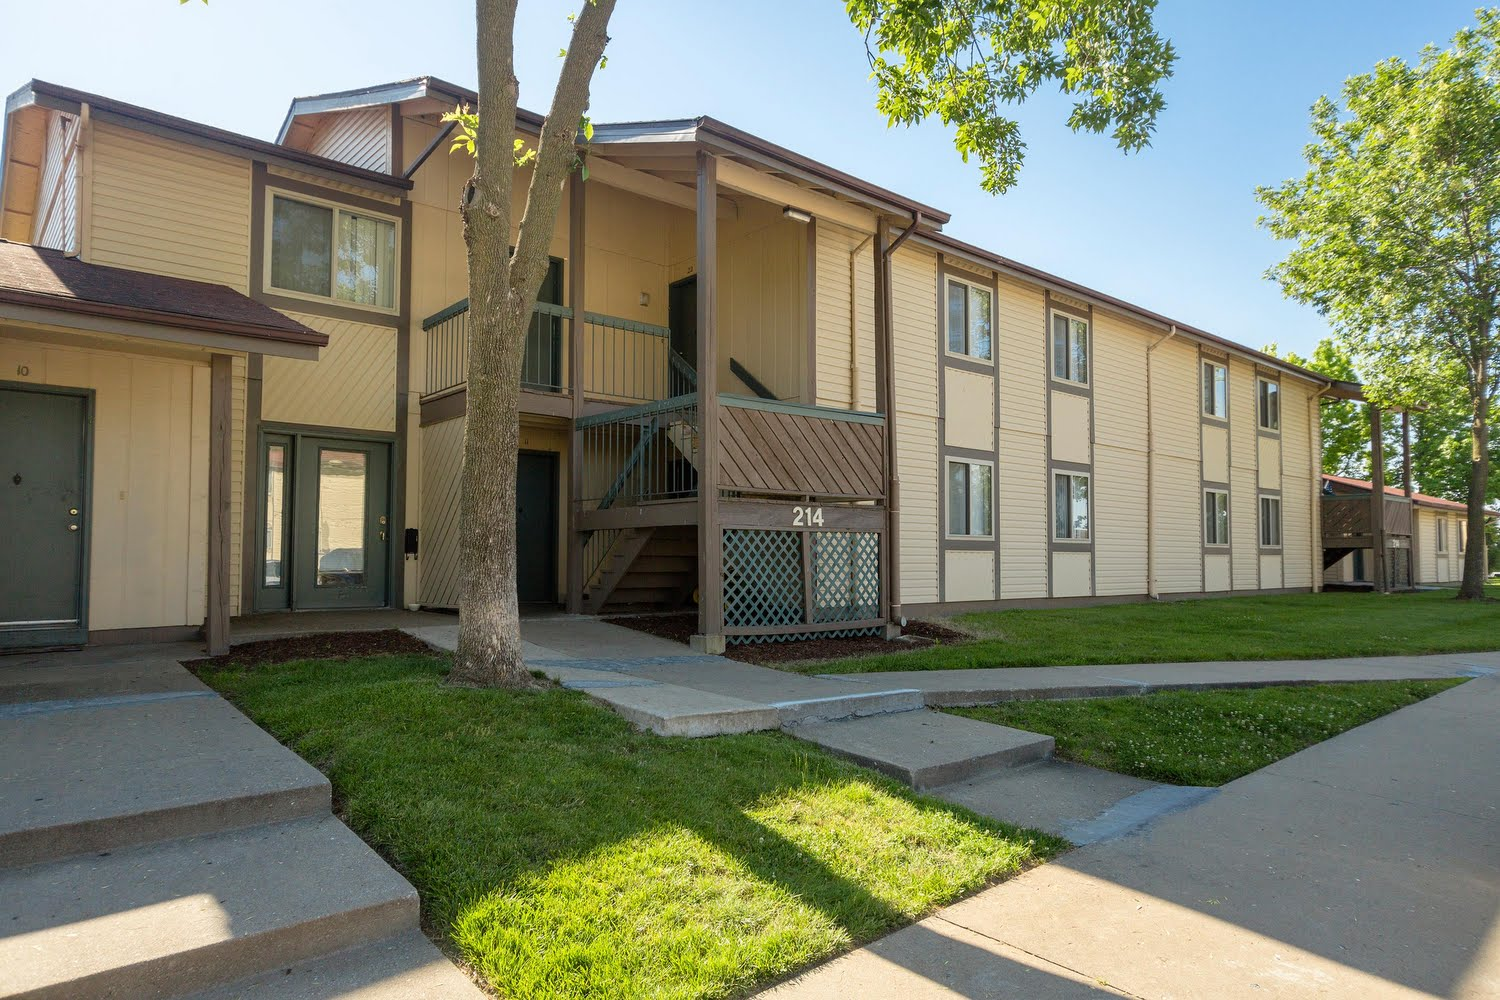 Lakewood apartments available for rent in columbia missouri - Cheap 1 bedroom apartments in columbia mo ...